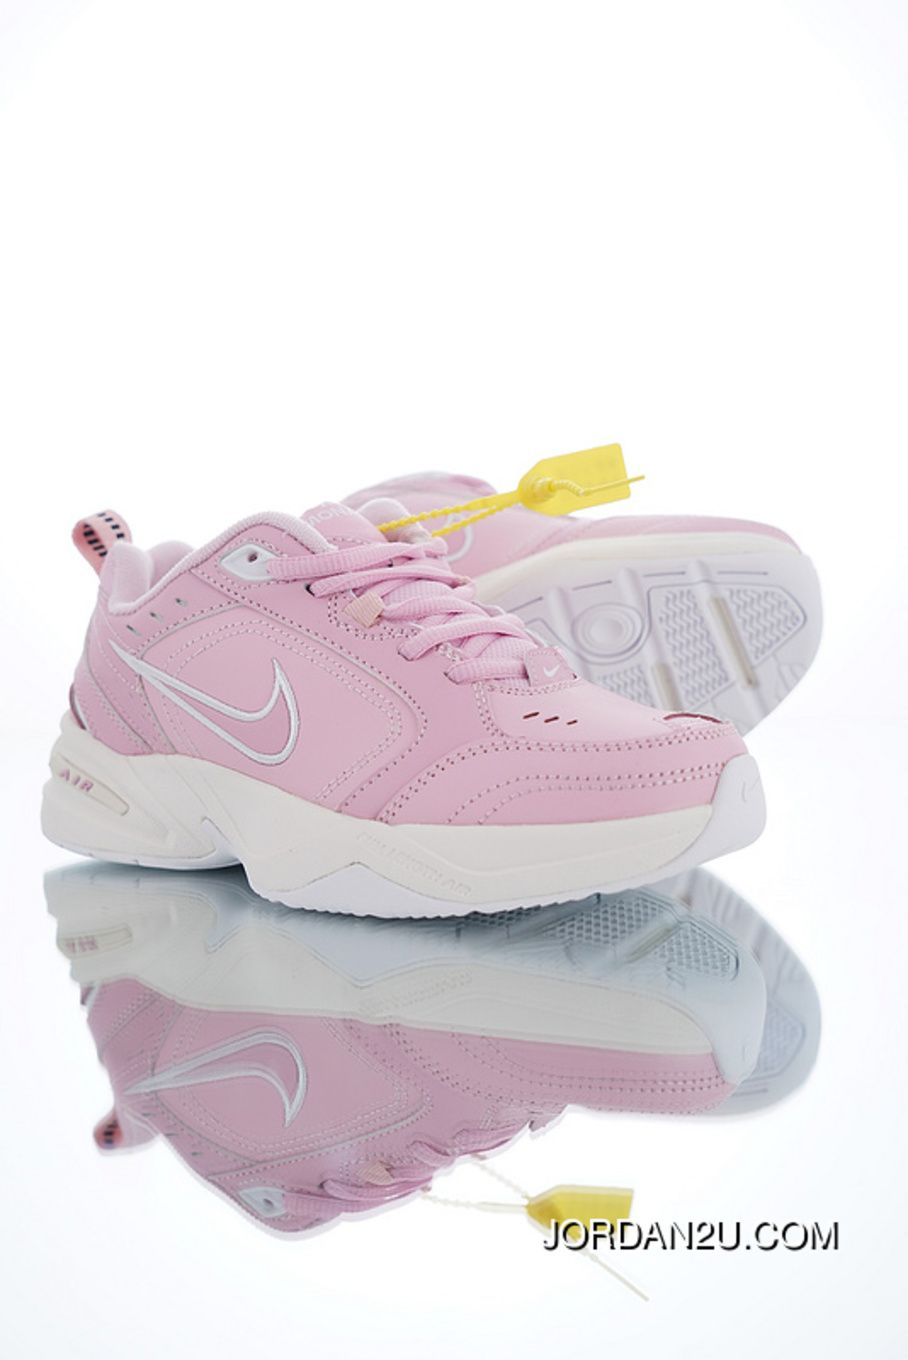 f73ad4b39499 Nike Wmns Air Monarch IV 415445-103 Nike M2K Tekno Pink White Women New  Release